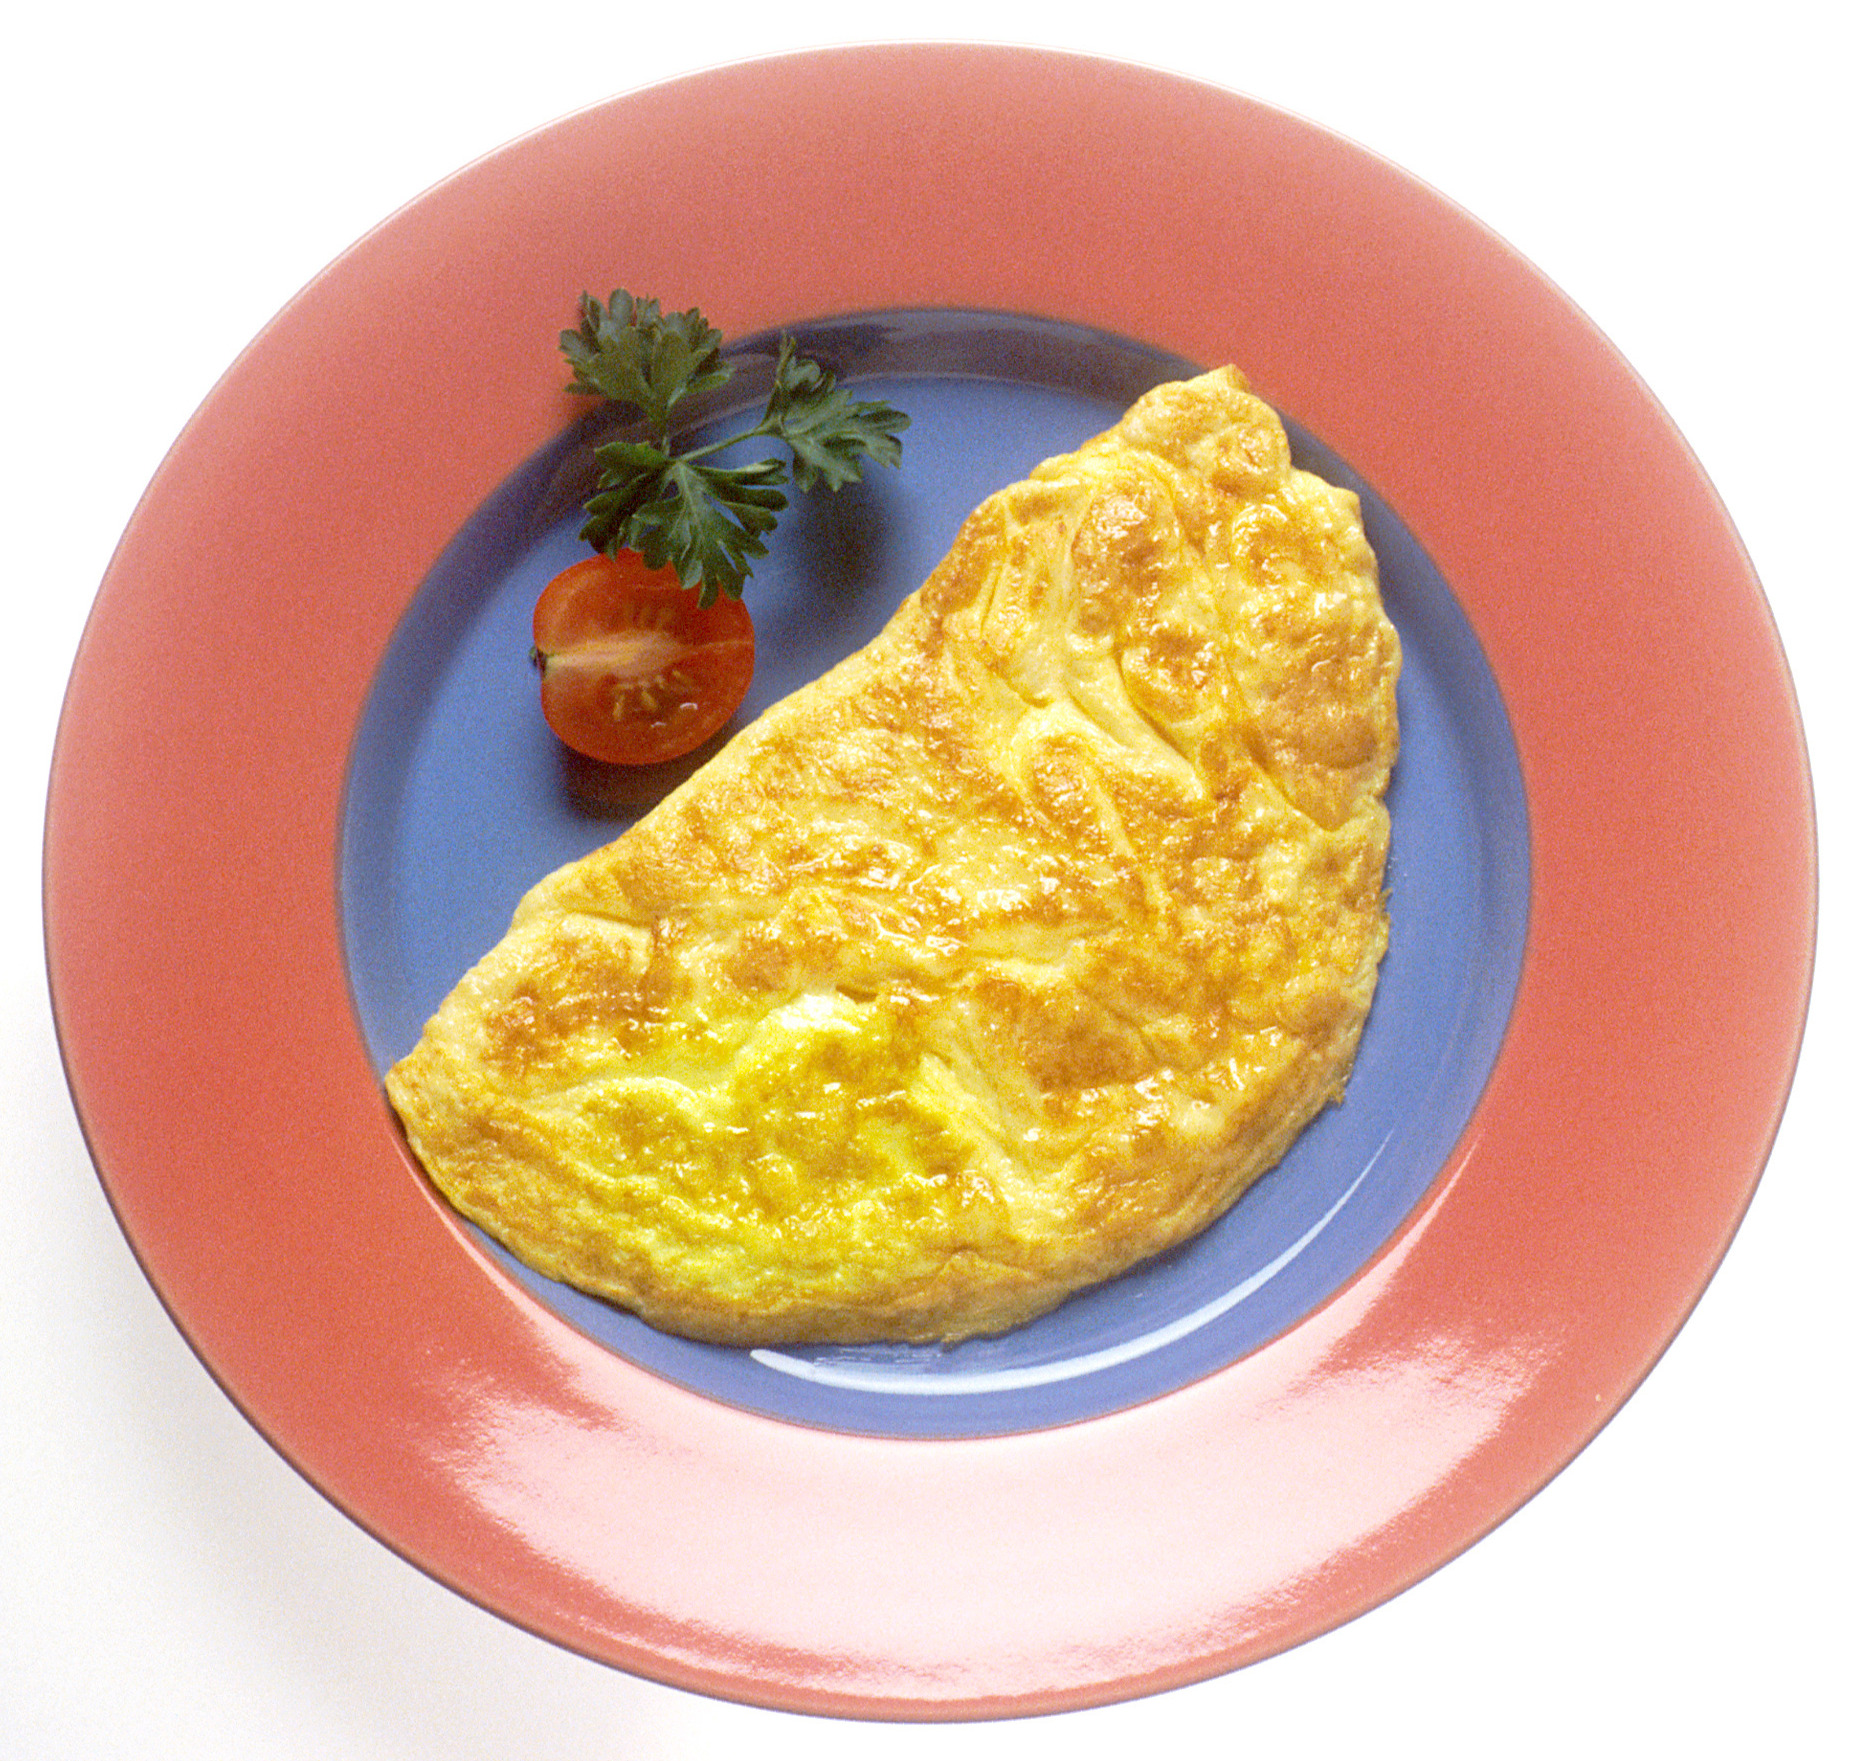 omelet hand-crafted breakfast